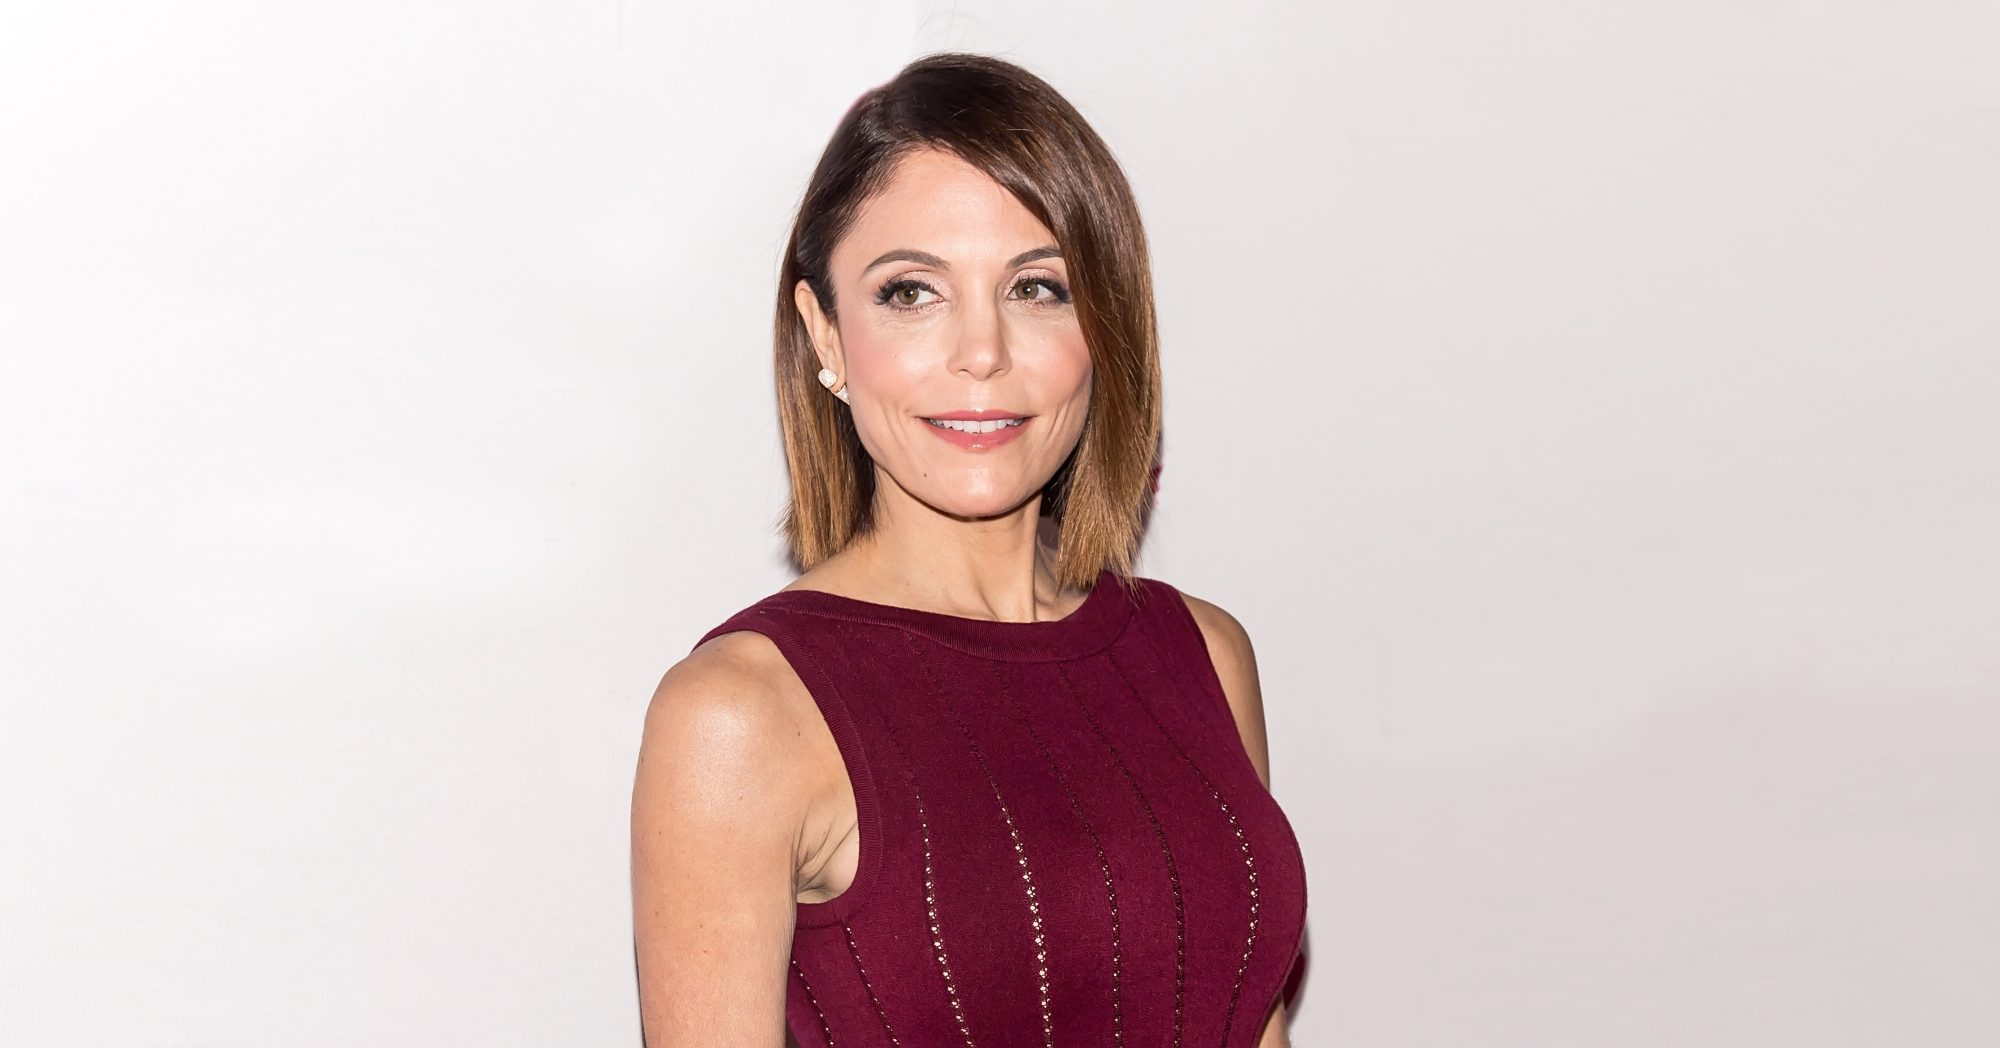 Bethenny Frankel Has Growth Removed from Face, Testing for Skin Cancer